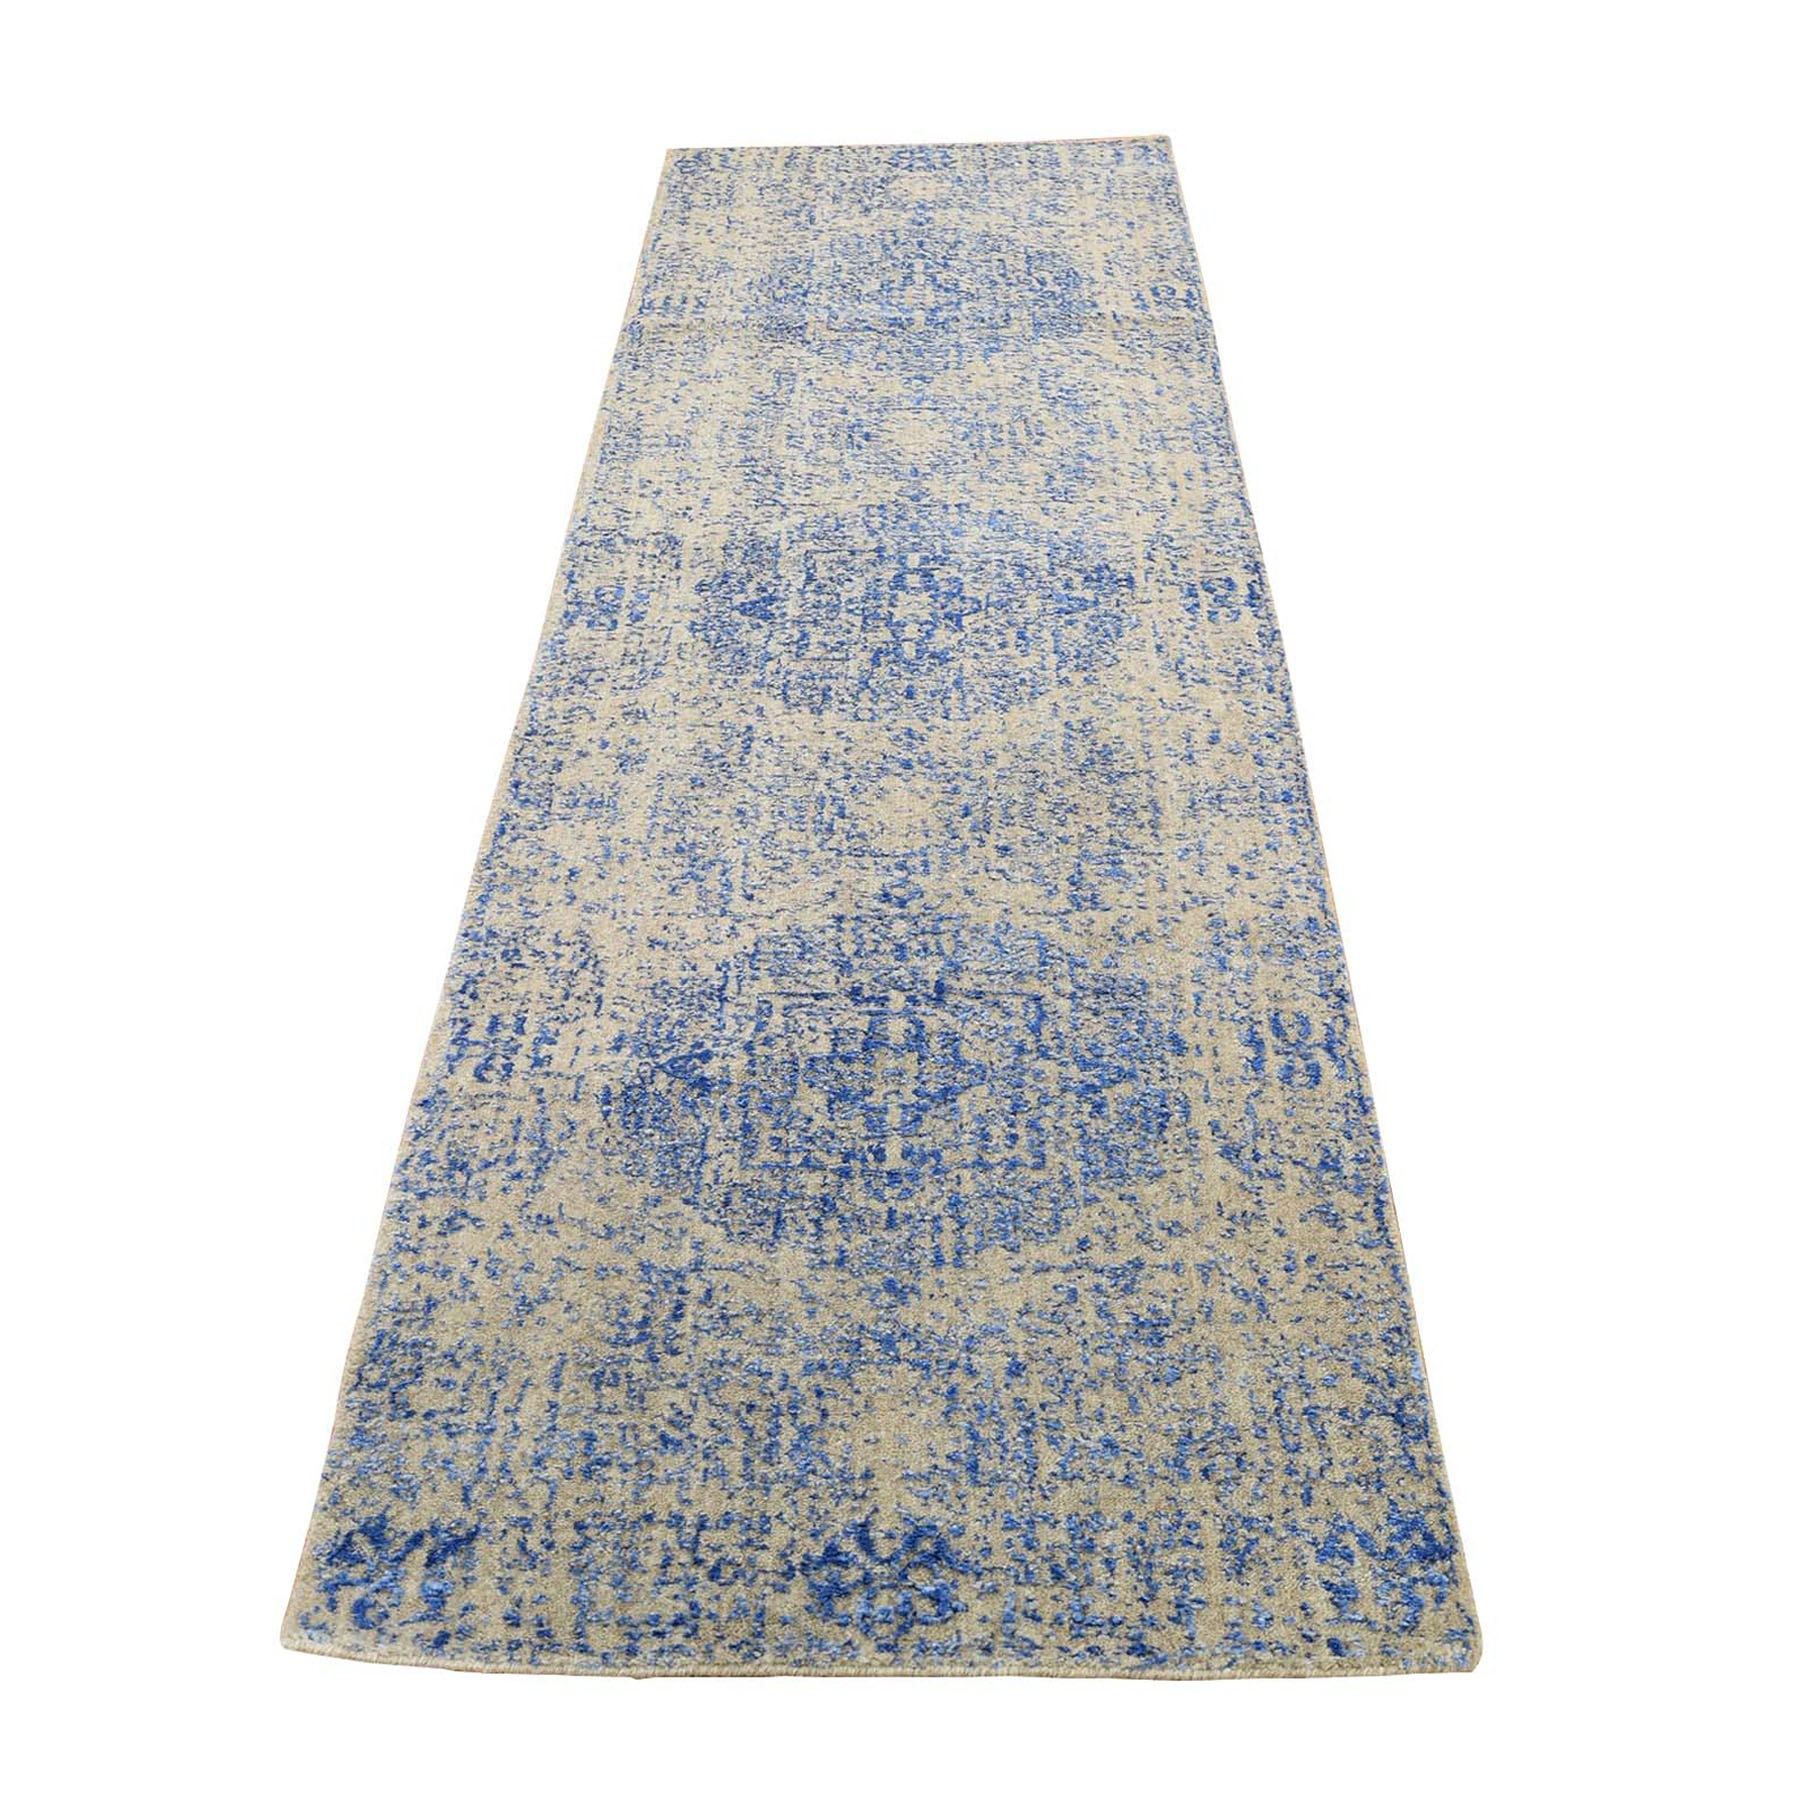 "2'5""X8' Wool And Silk Mamluk Design Jacquard Hand Loomed Runner Oriental Rug moad9aac"